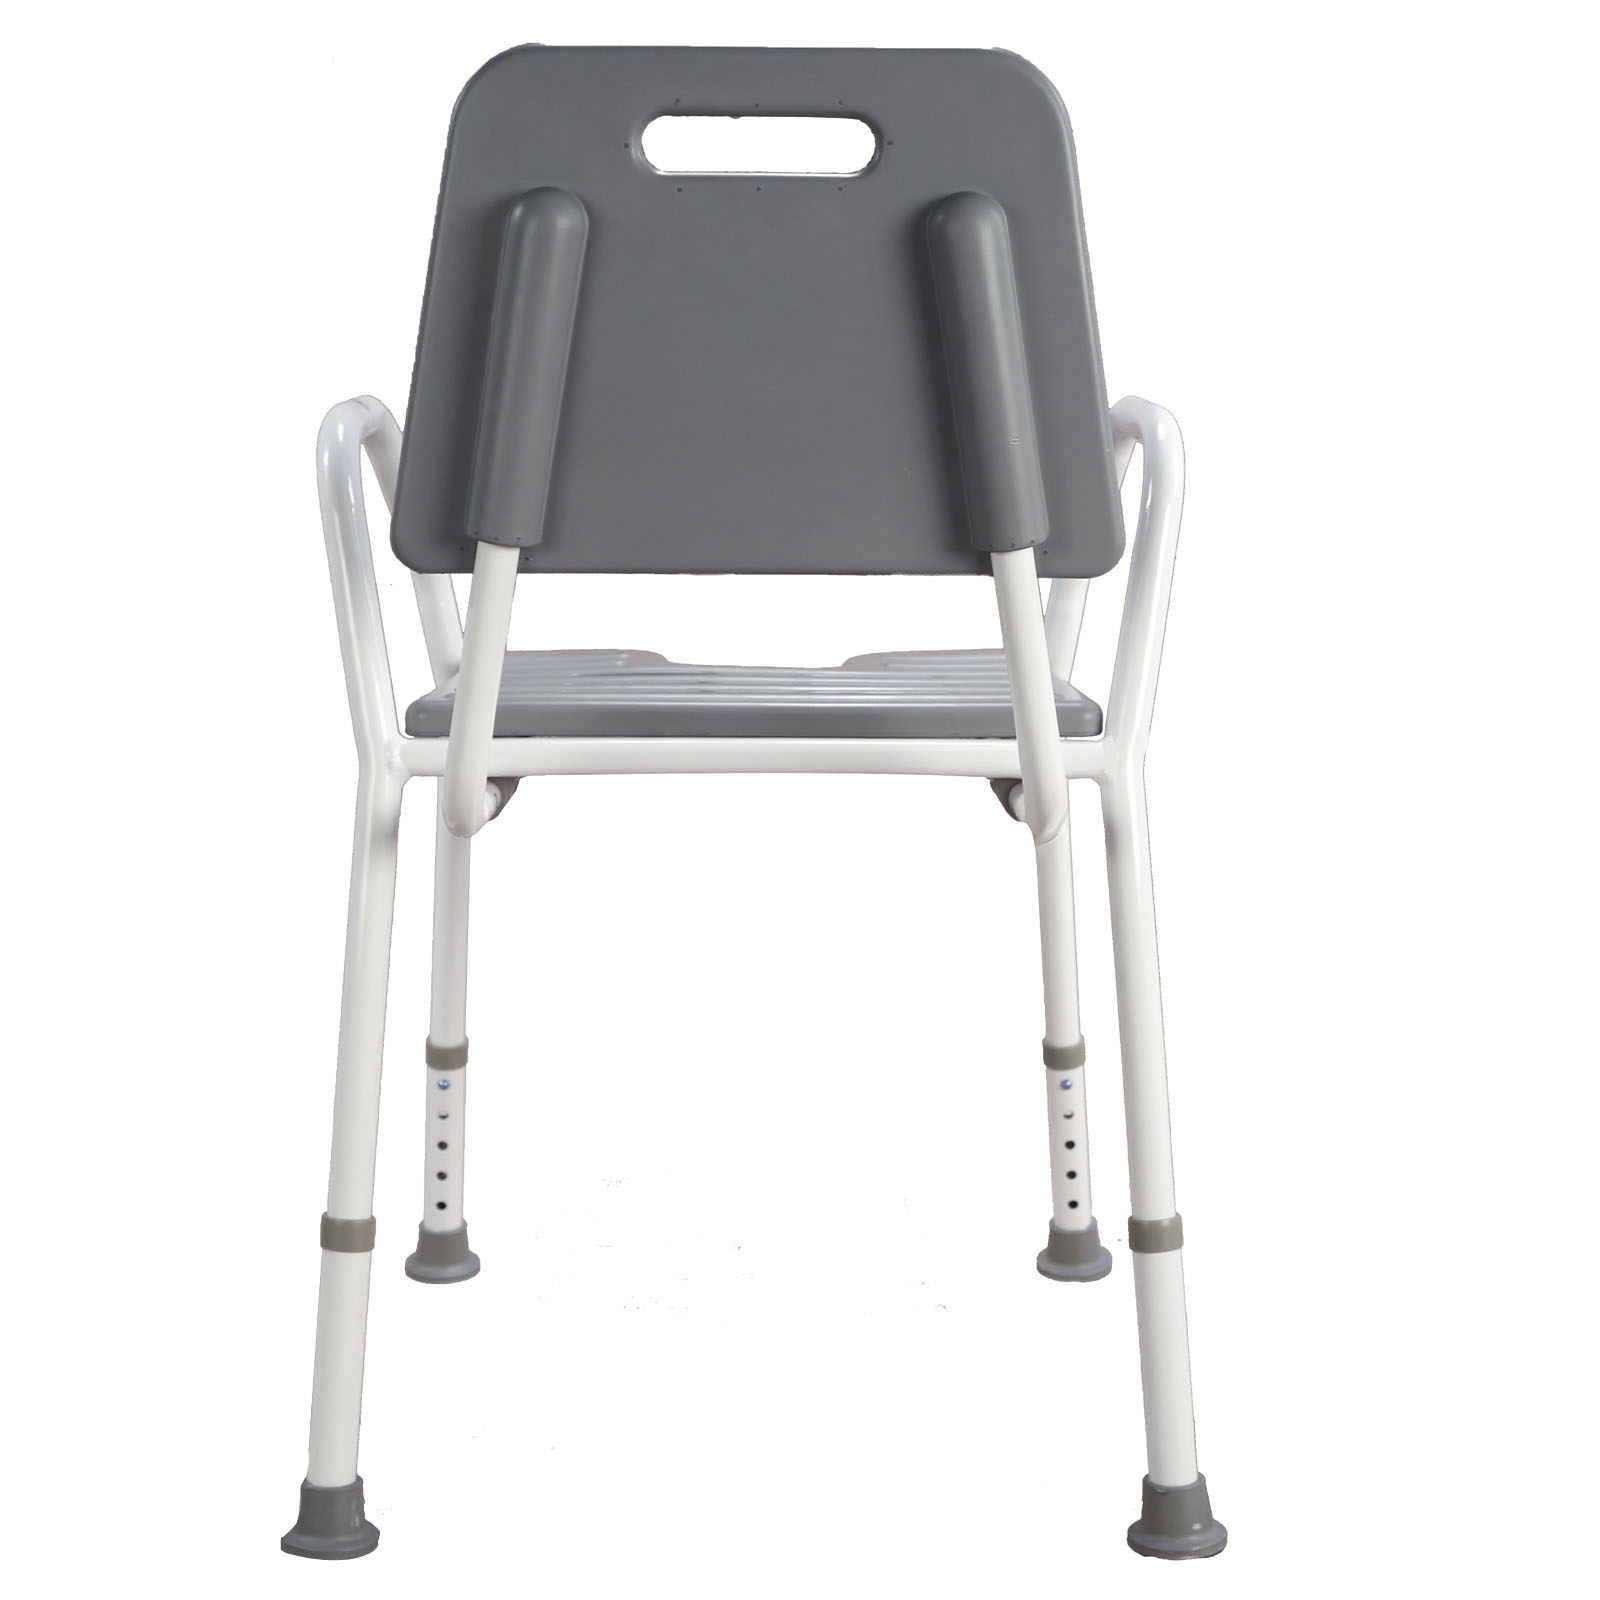 shower chair with wheels and removable arms electric death seat stool adjustable height soft backrest